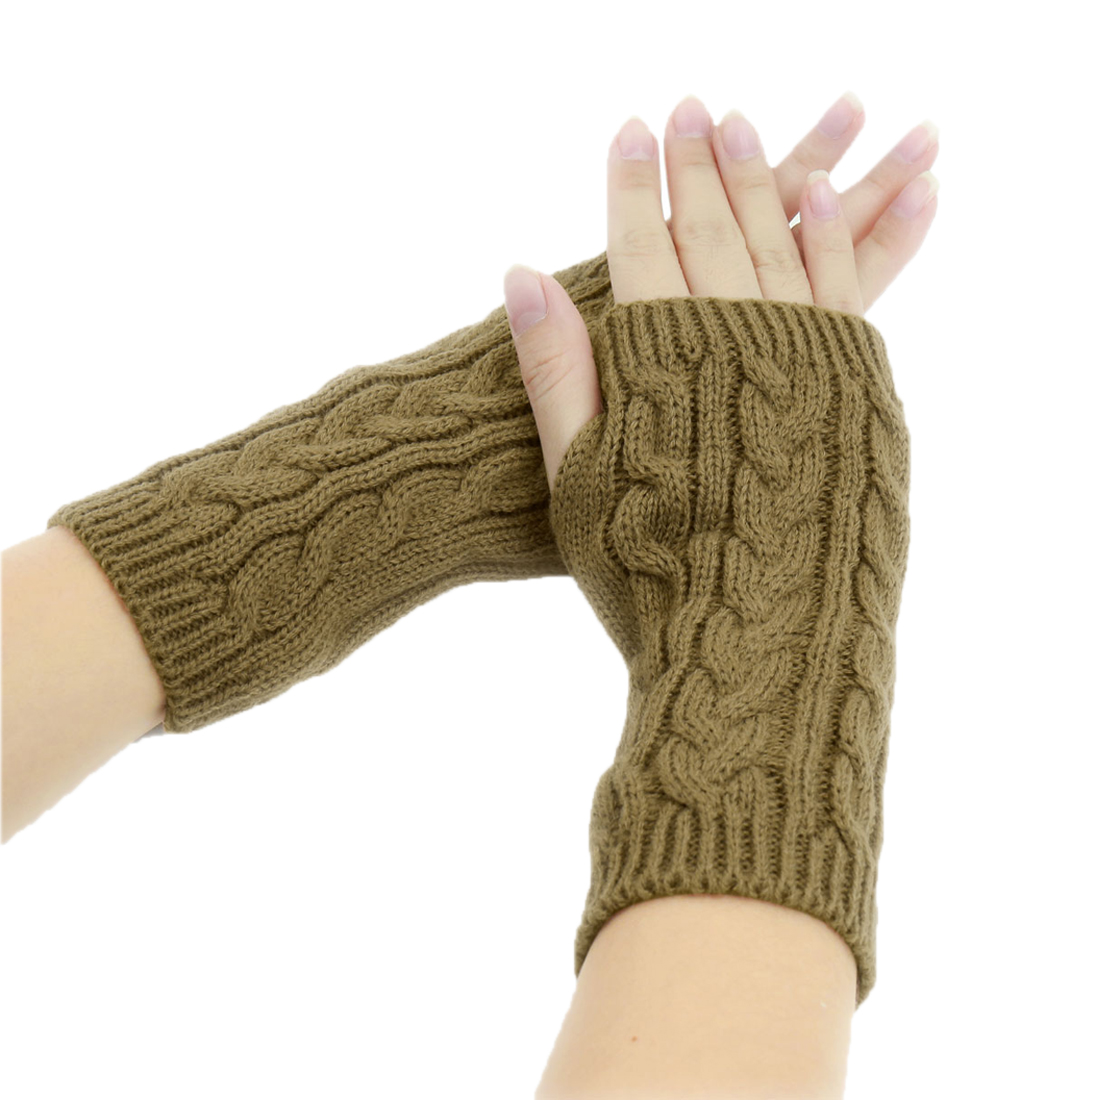 Unique Bargains Unisex's Knit Thumbhole Cable Fingerless Knitted Gloves